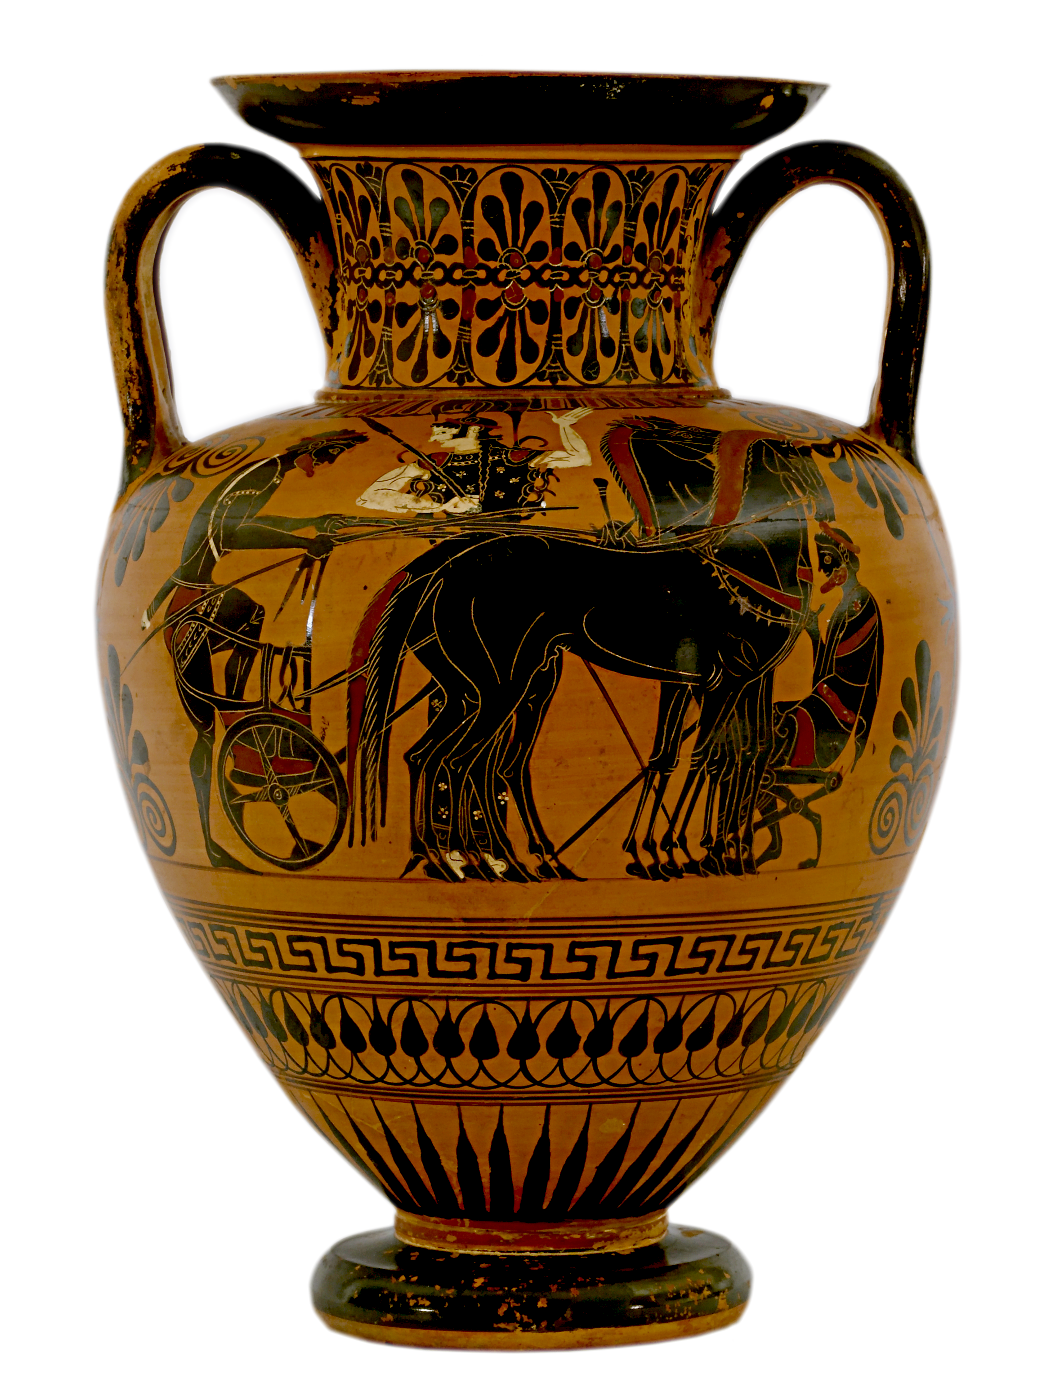 Filegreek black figure amphora walters 48224 side a glare filegreek black figure amphora walters 48224 side a glare reduced reviewsmspy